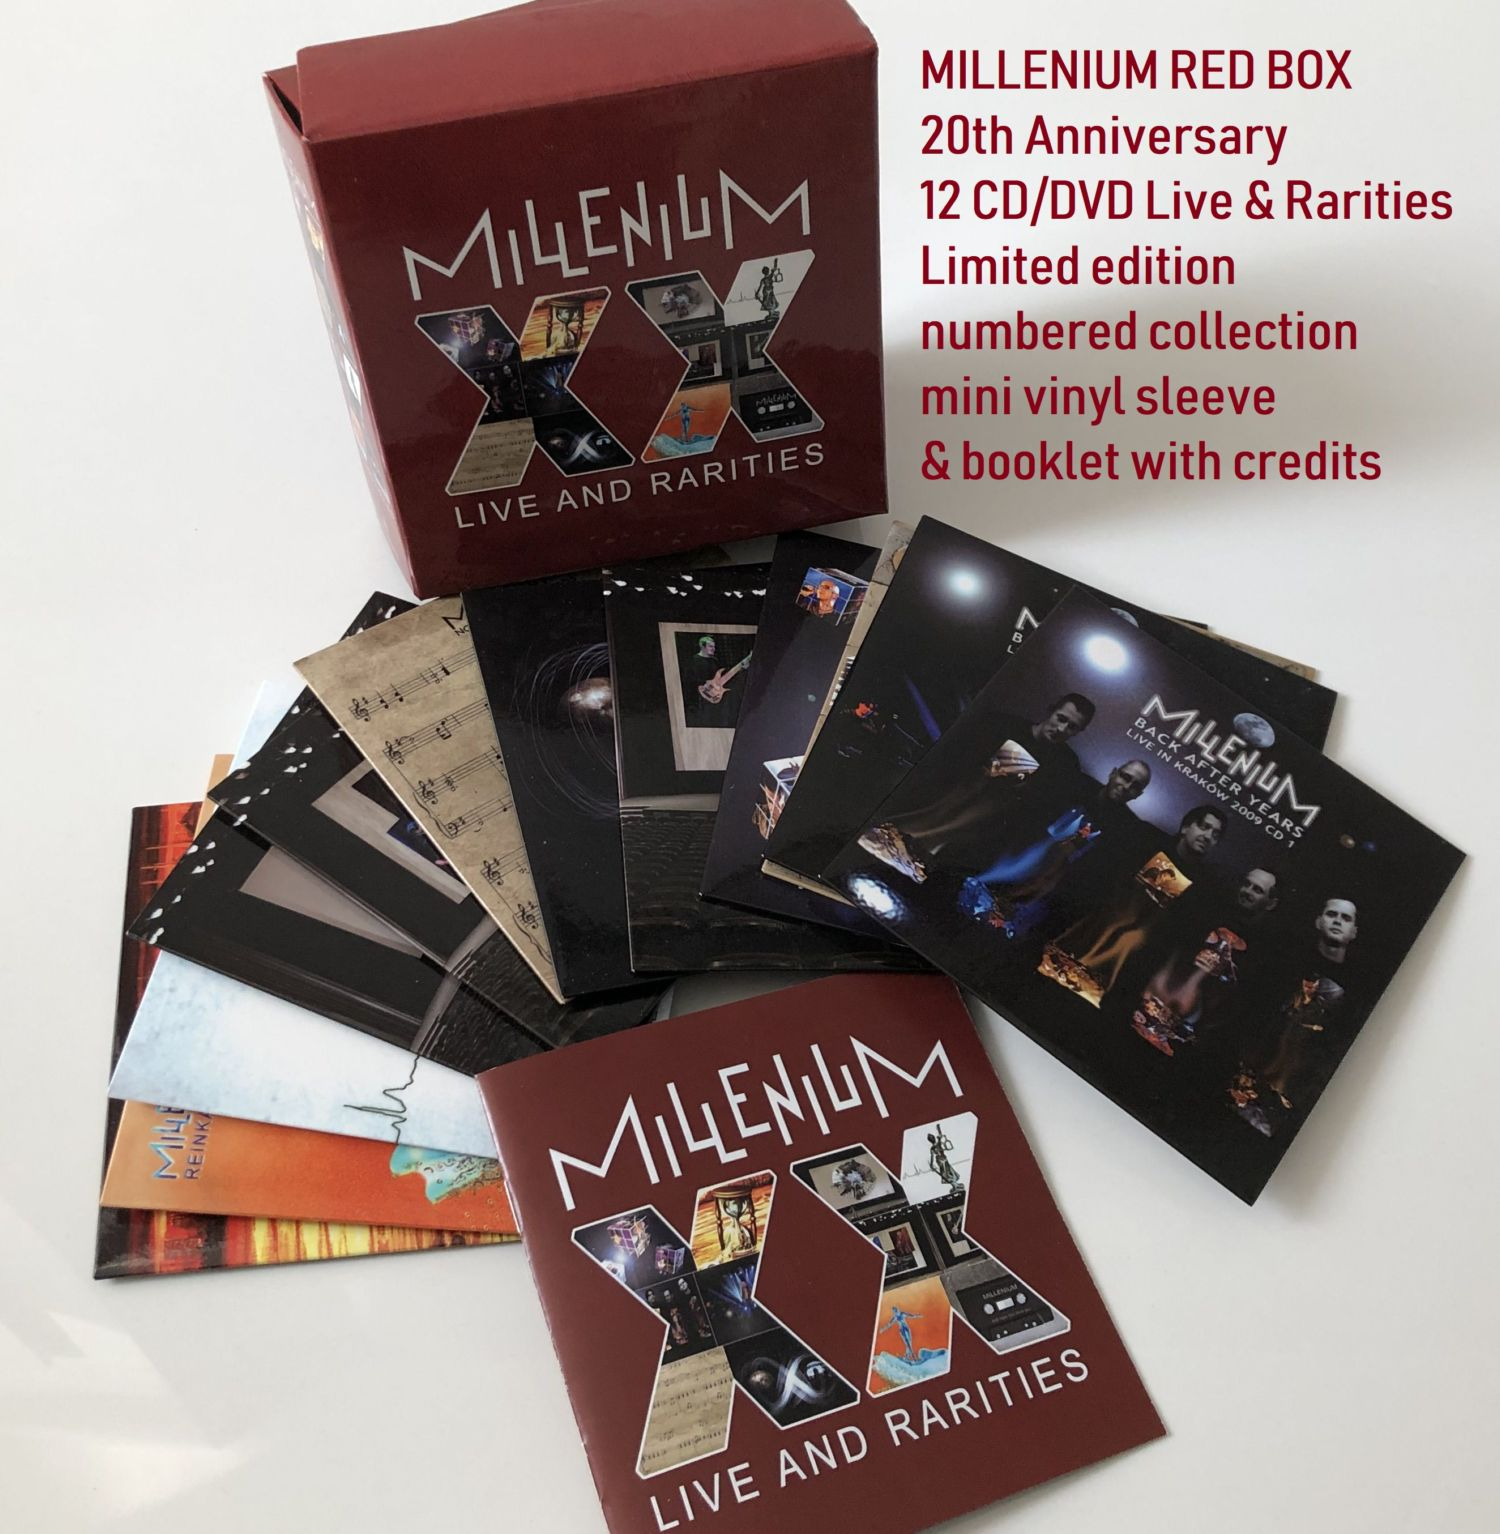 Red Box 12CD/DVD Live & rarities